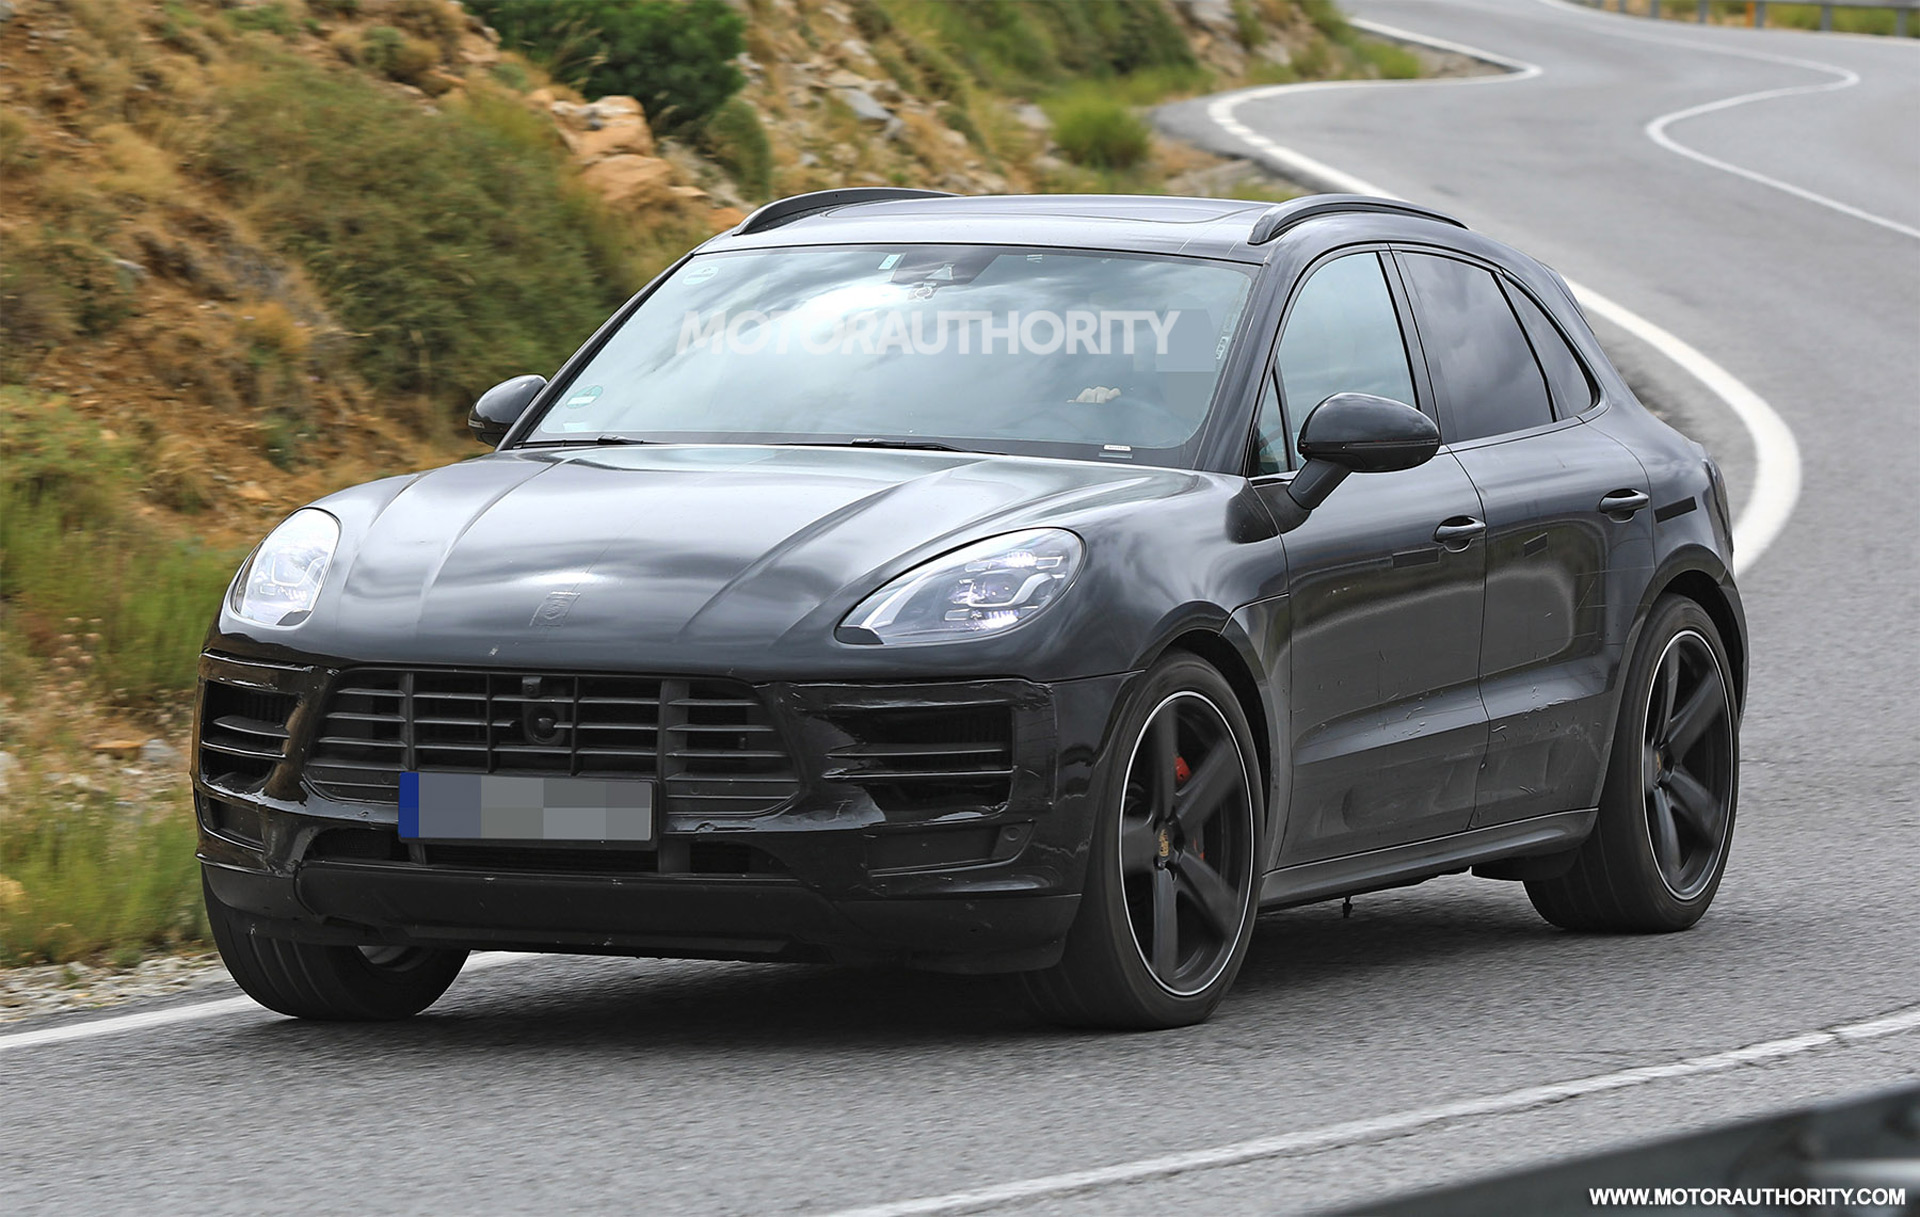 2019 Porsche Macan Spy Shots And Video Autozaurus